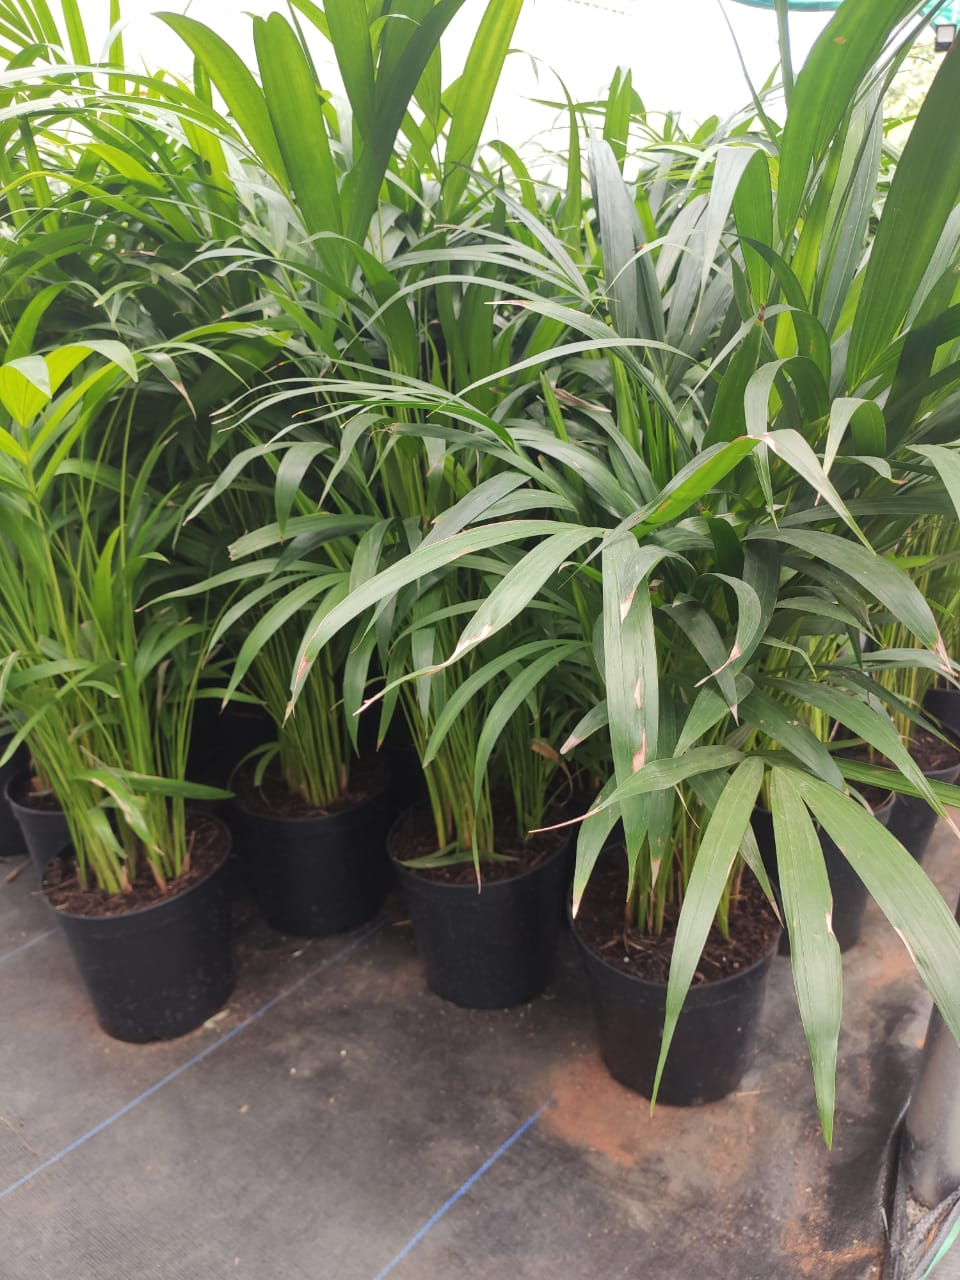 OUTDOOR PLANTS  | EMPHASIS LANDSCAPE & DESIGN | DRAIN BOARD MANUFACTURERS IN BANGALORE ,GEO FABRIC SUPPLIER ,DRAINAGE CELL BANGALORE ,PLANTS SUPLLIERS IN BANGALORE ,DRAIN BOARD BANGALORE - GL101318